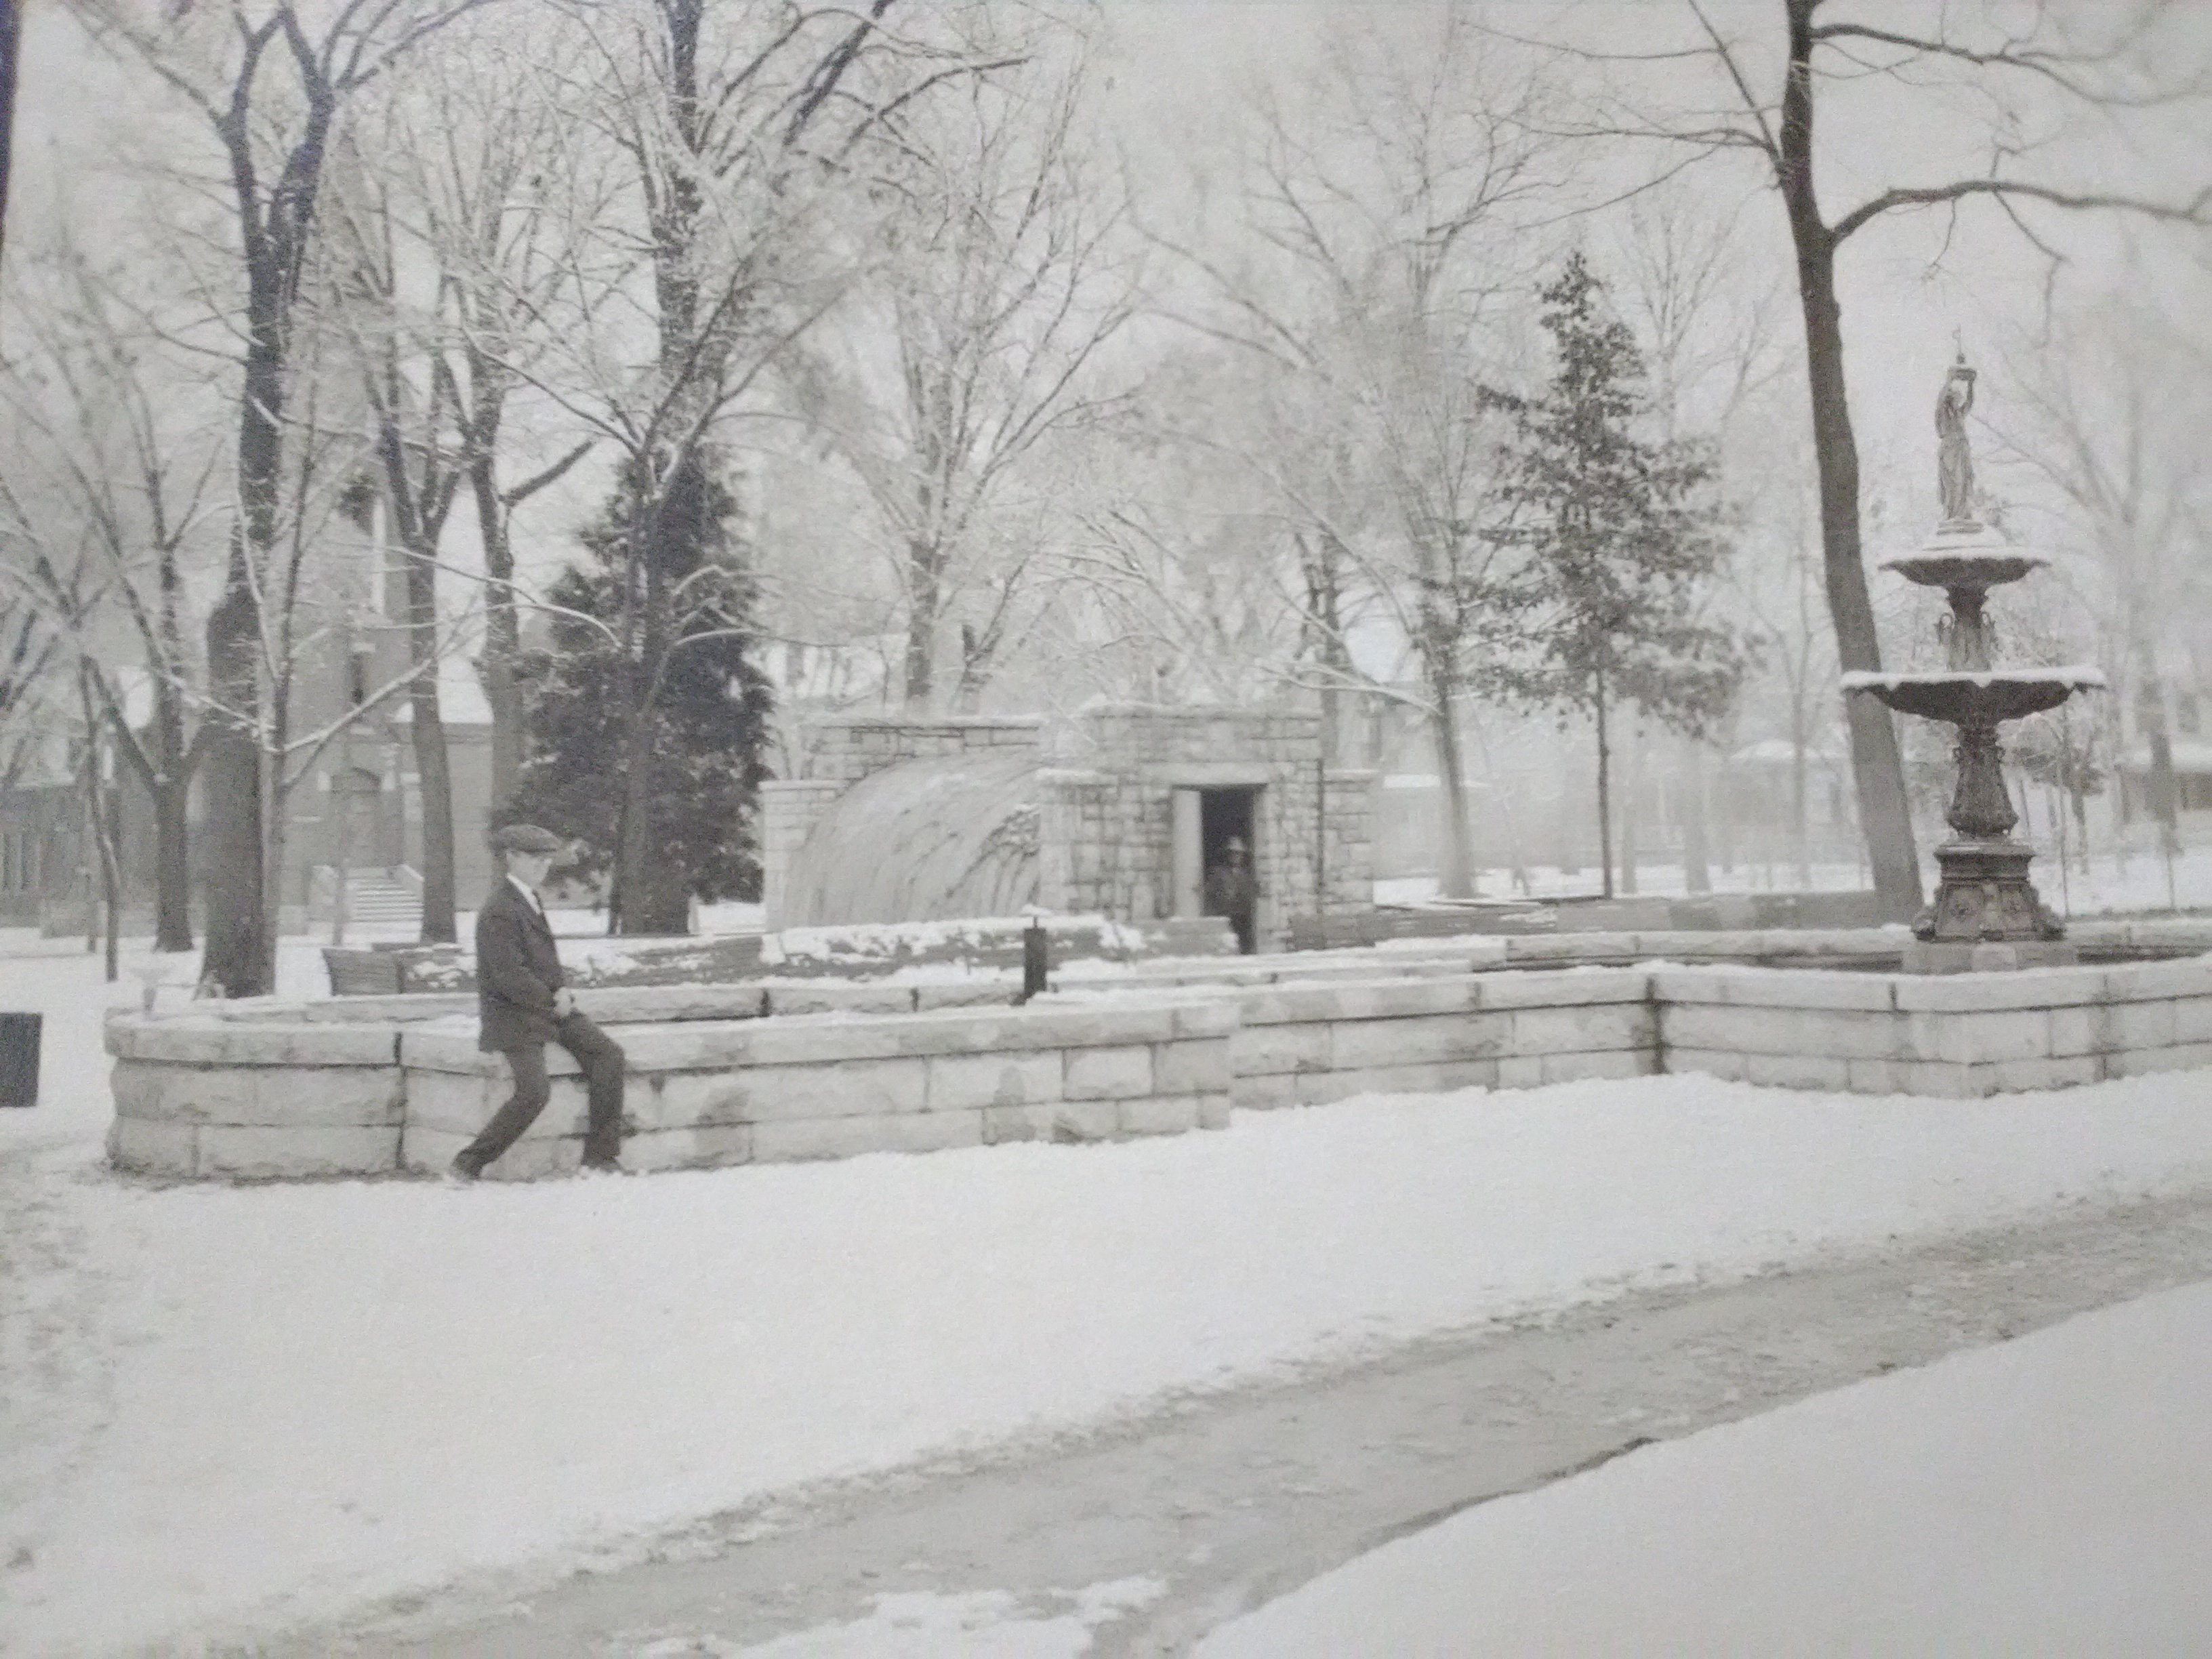 Detail of Central Park fountain as seen in winter from a larger photograph on display in the 175th Anniversary of Carthage 2017 Exhibit at Powers Museum. The photographer was William Weaver and image is circa 1910-15.